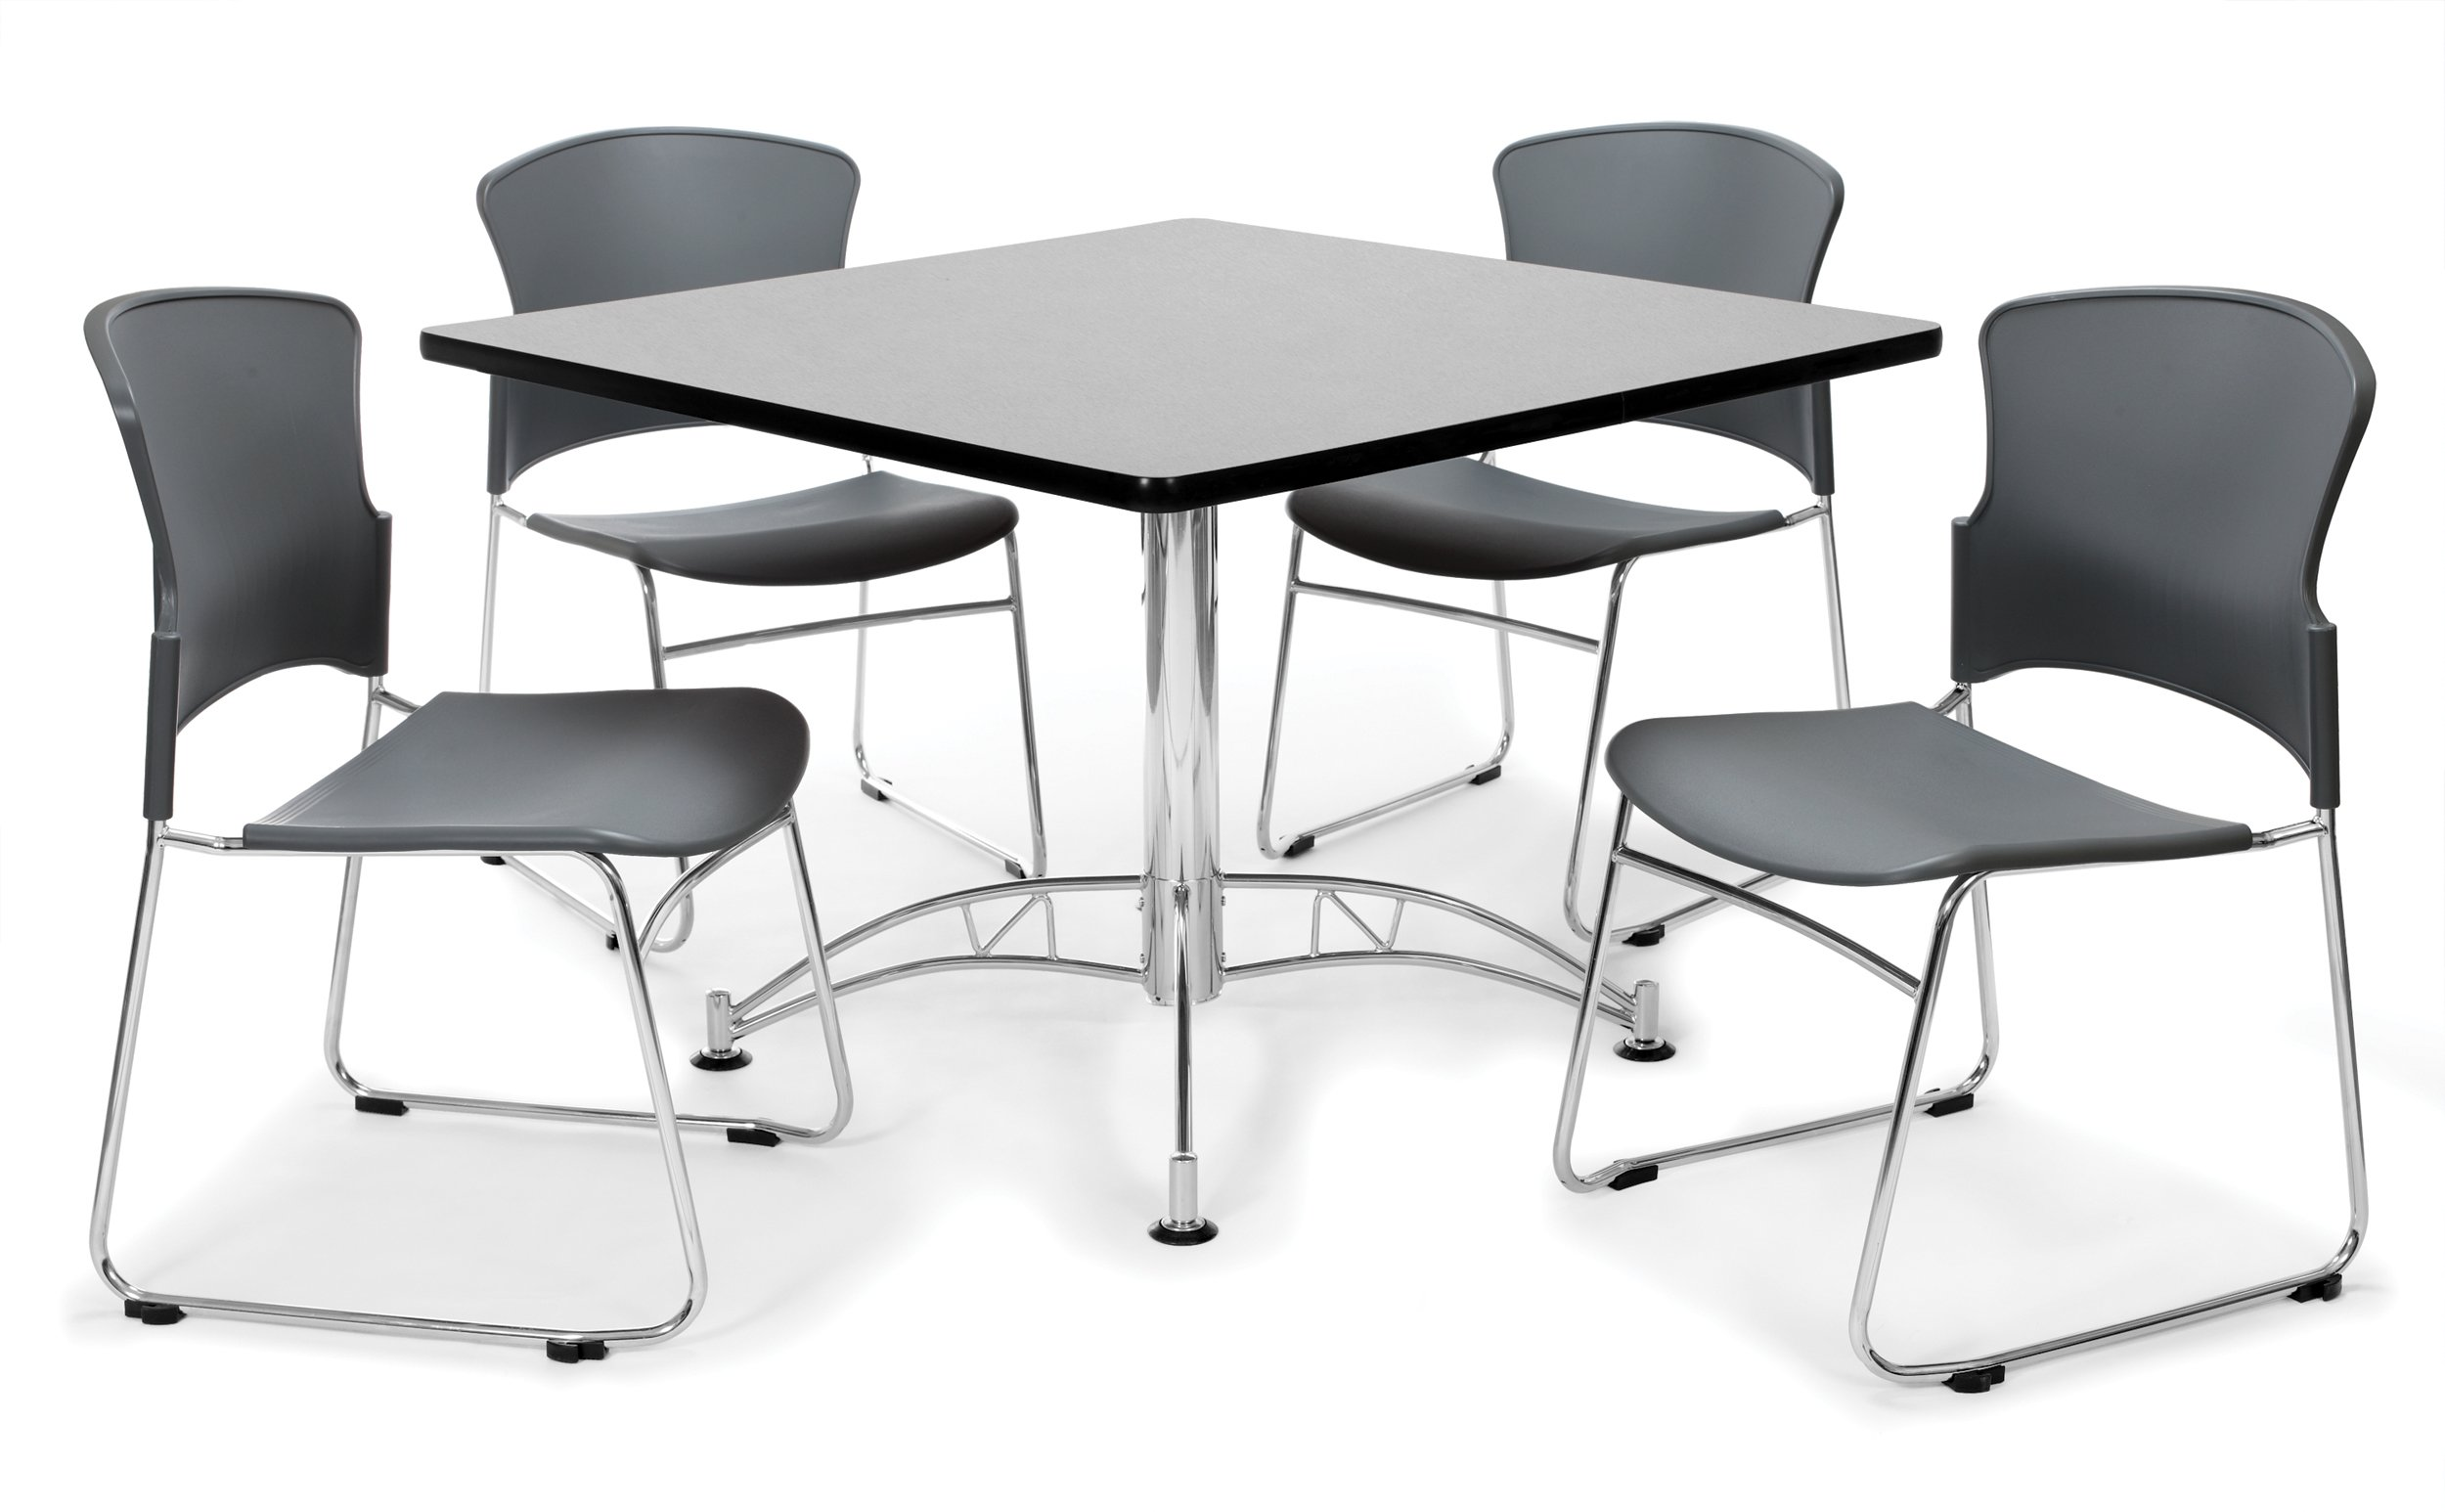 OFM PKG-BRK-09-0005 Breakroom Package, Gray Nebula Table/Gray Chair by OFM